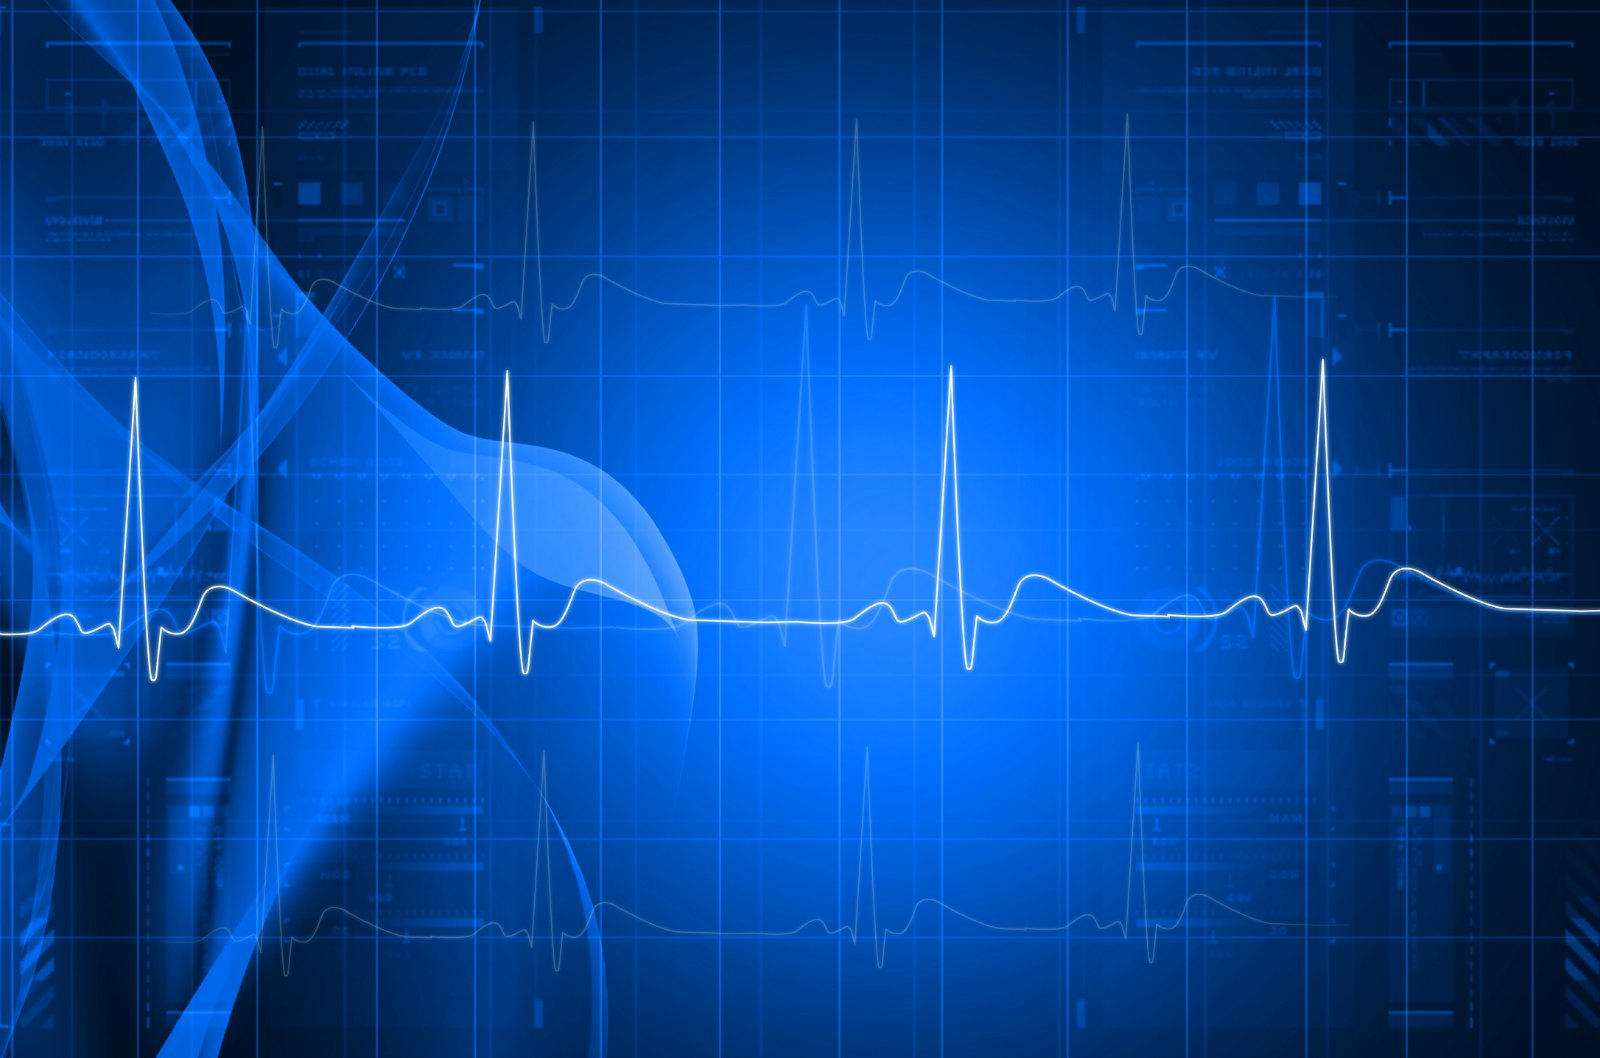 Software Program Gets to the Heart of Electrocardiogram (ECG) Results